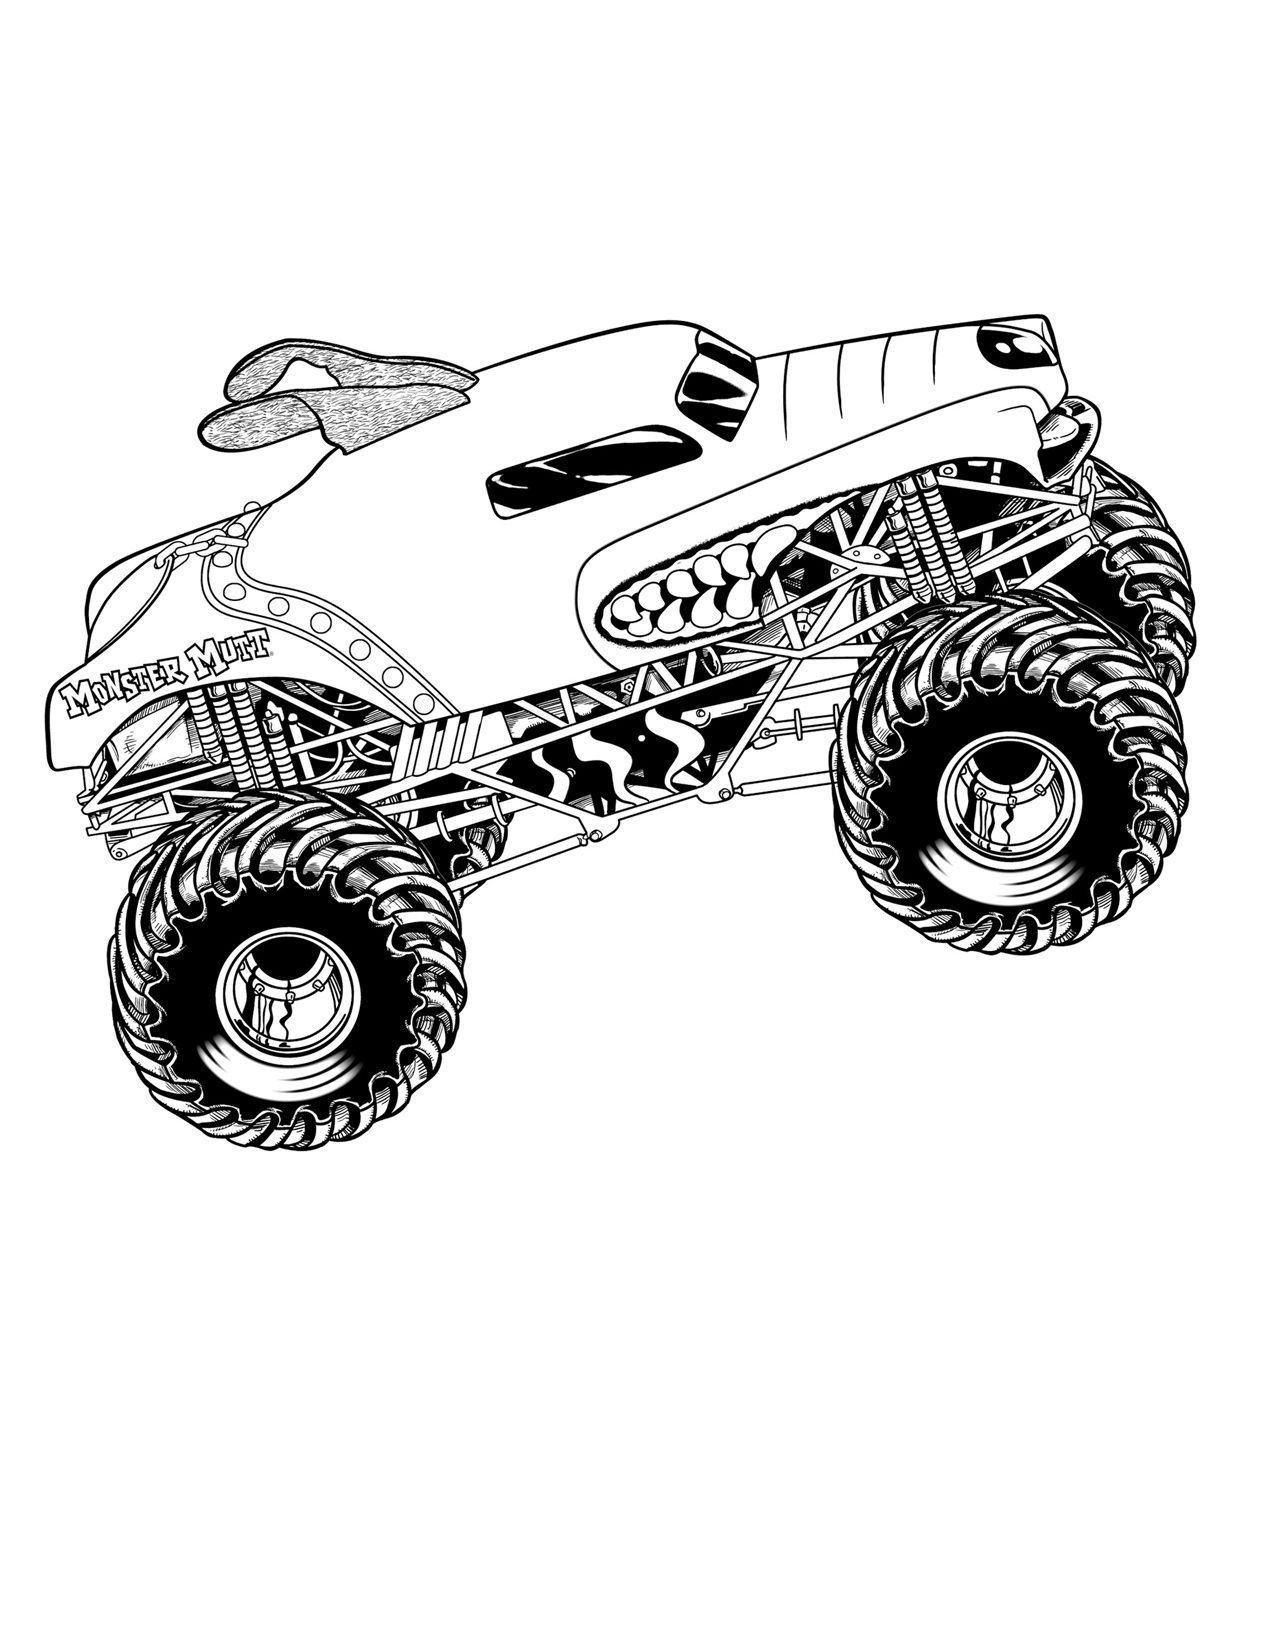 Dragon Monster Truck Coloring Page Youngandtae Com In 2020 Monster Truck Coloring Pages Truck Coloring Pages Monster Trucks